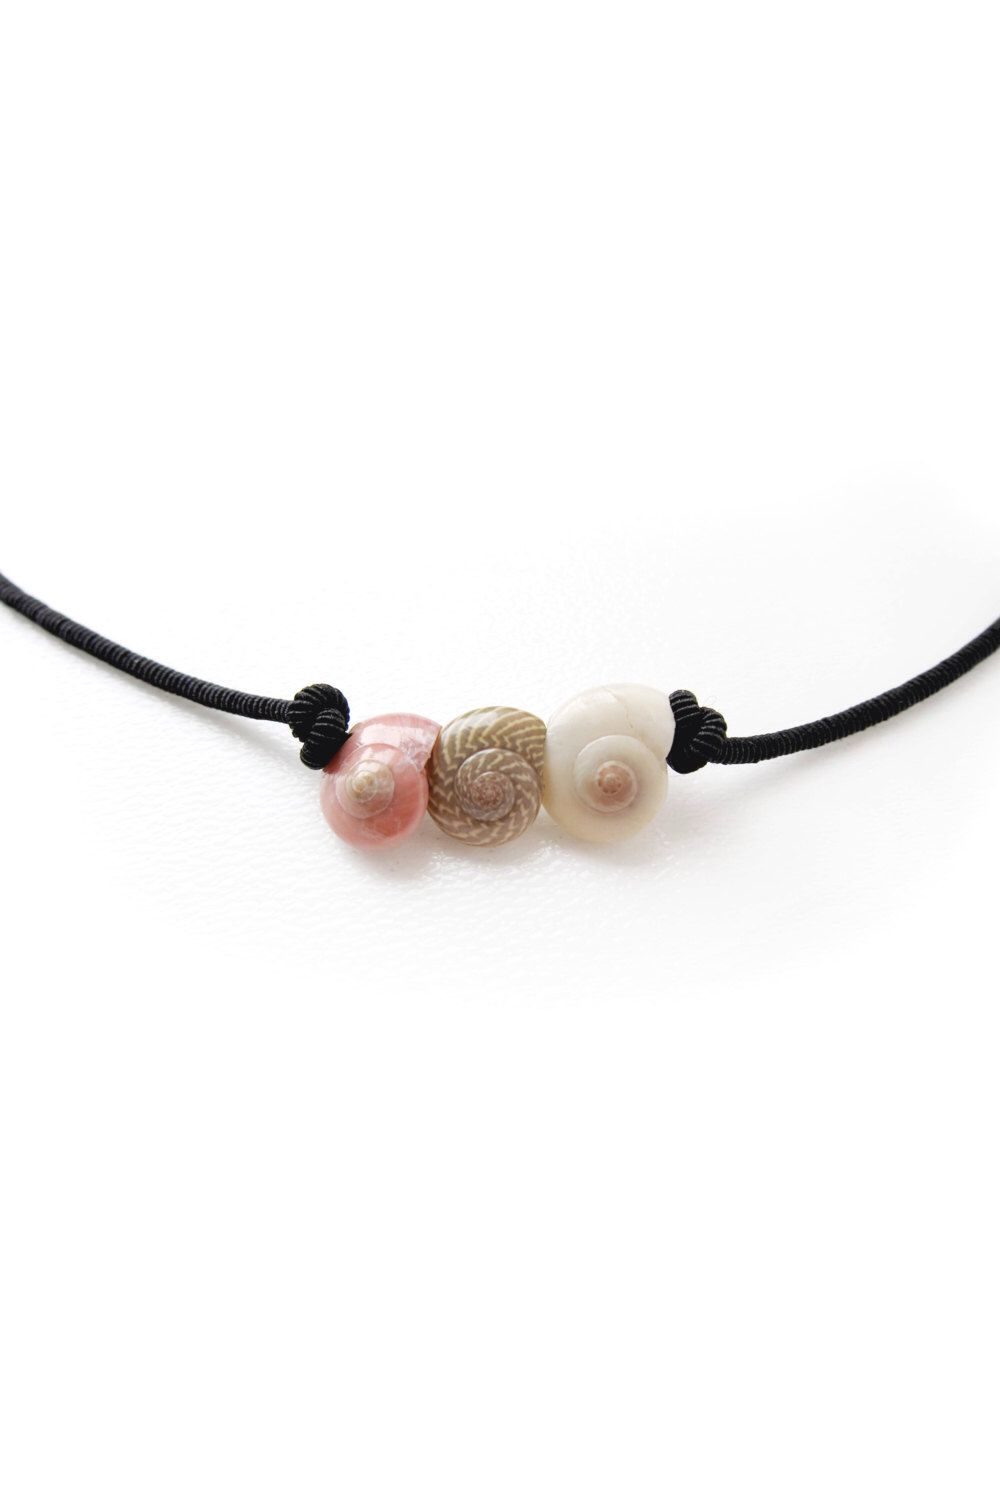 Seashell Necklace! I need this in my life!                                                                                                                                                      More